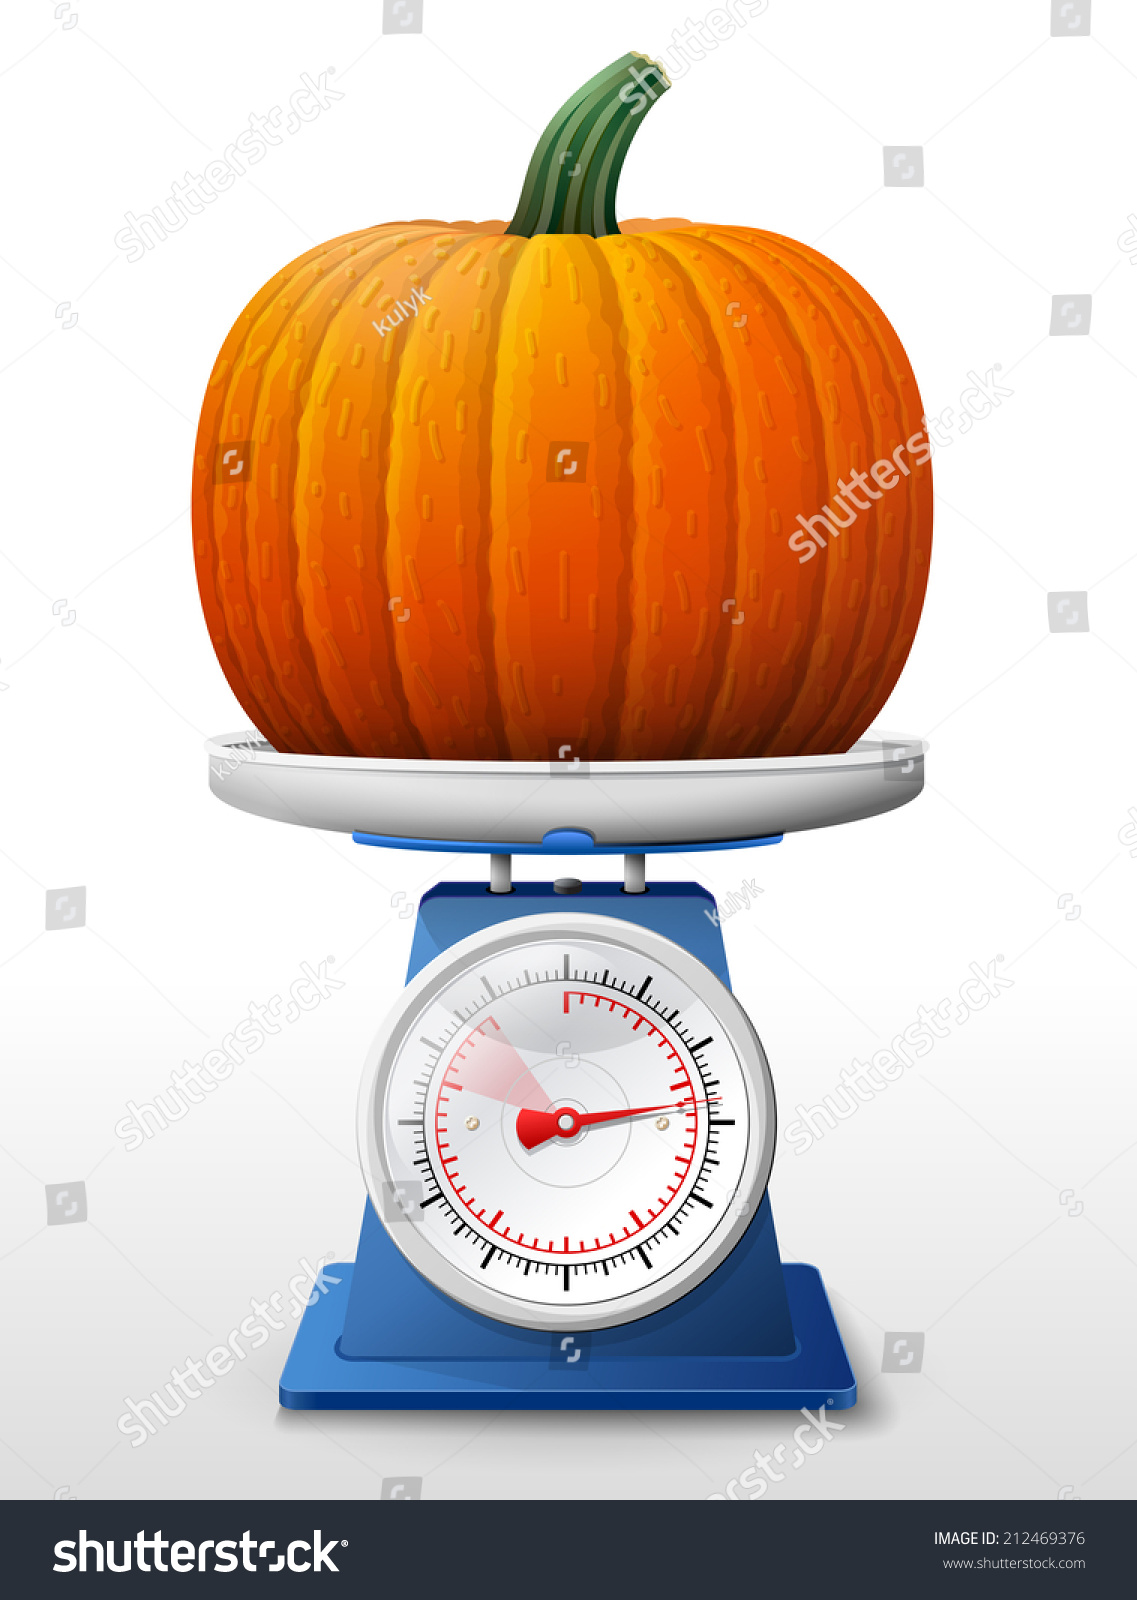 Pumpkin Fruit On Scale Pan Weighing Winter Squash On